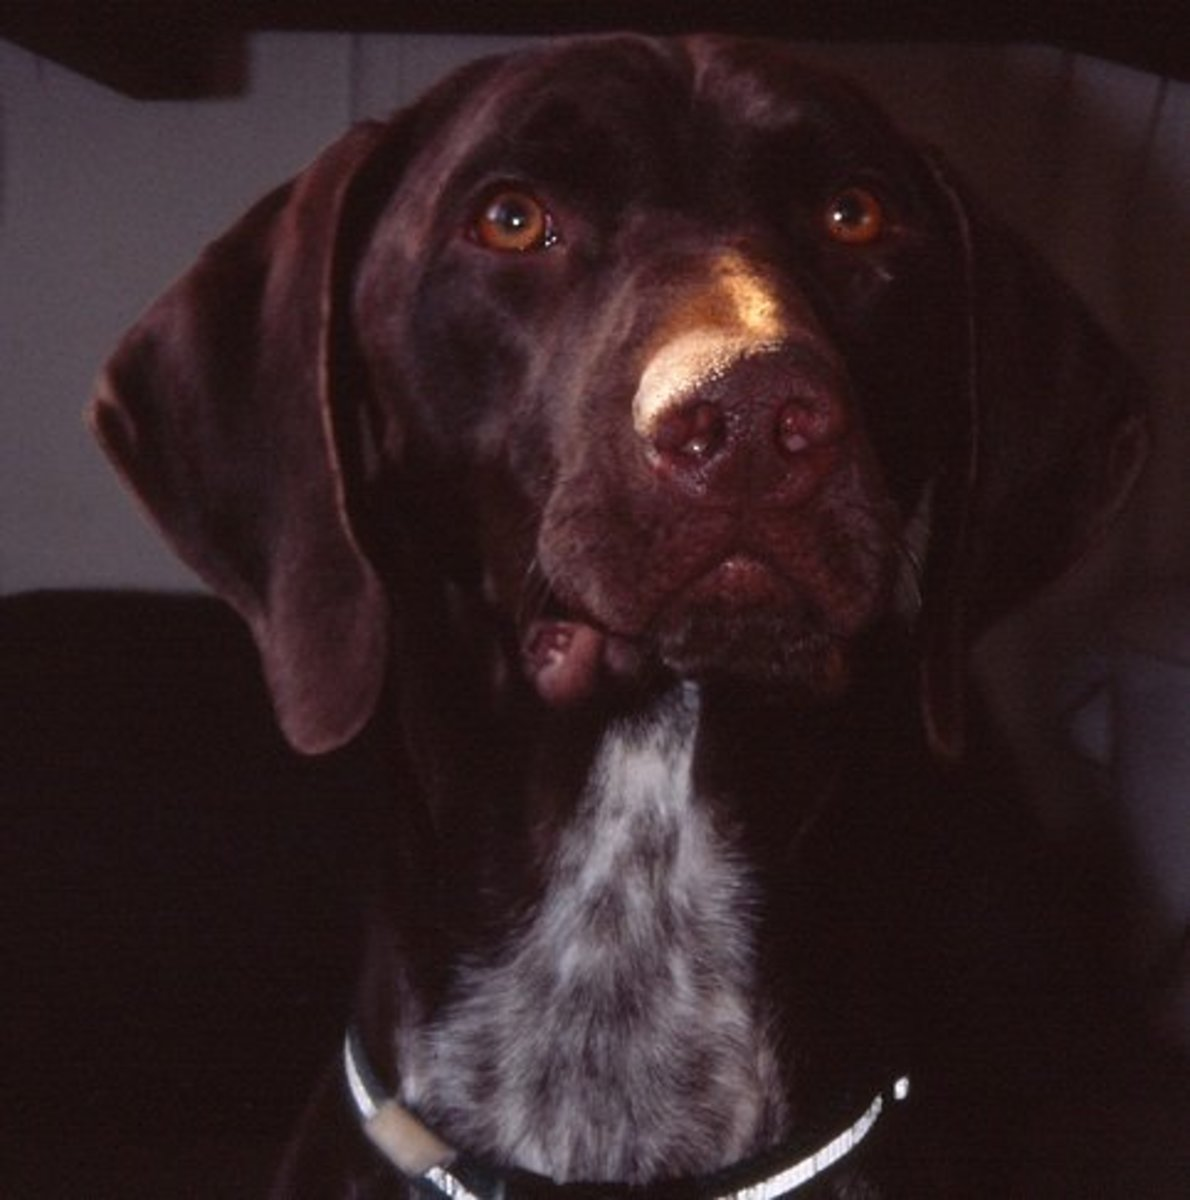 Adult German Shorthaired Pointers are pretty cute, too!